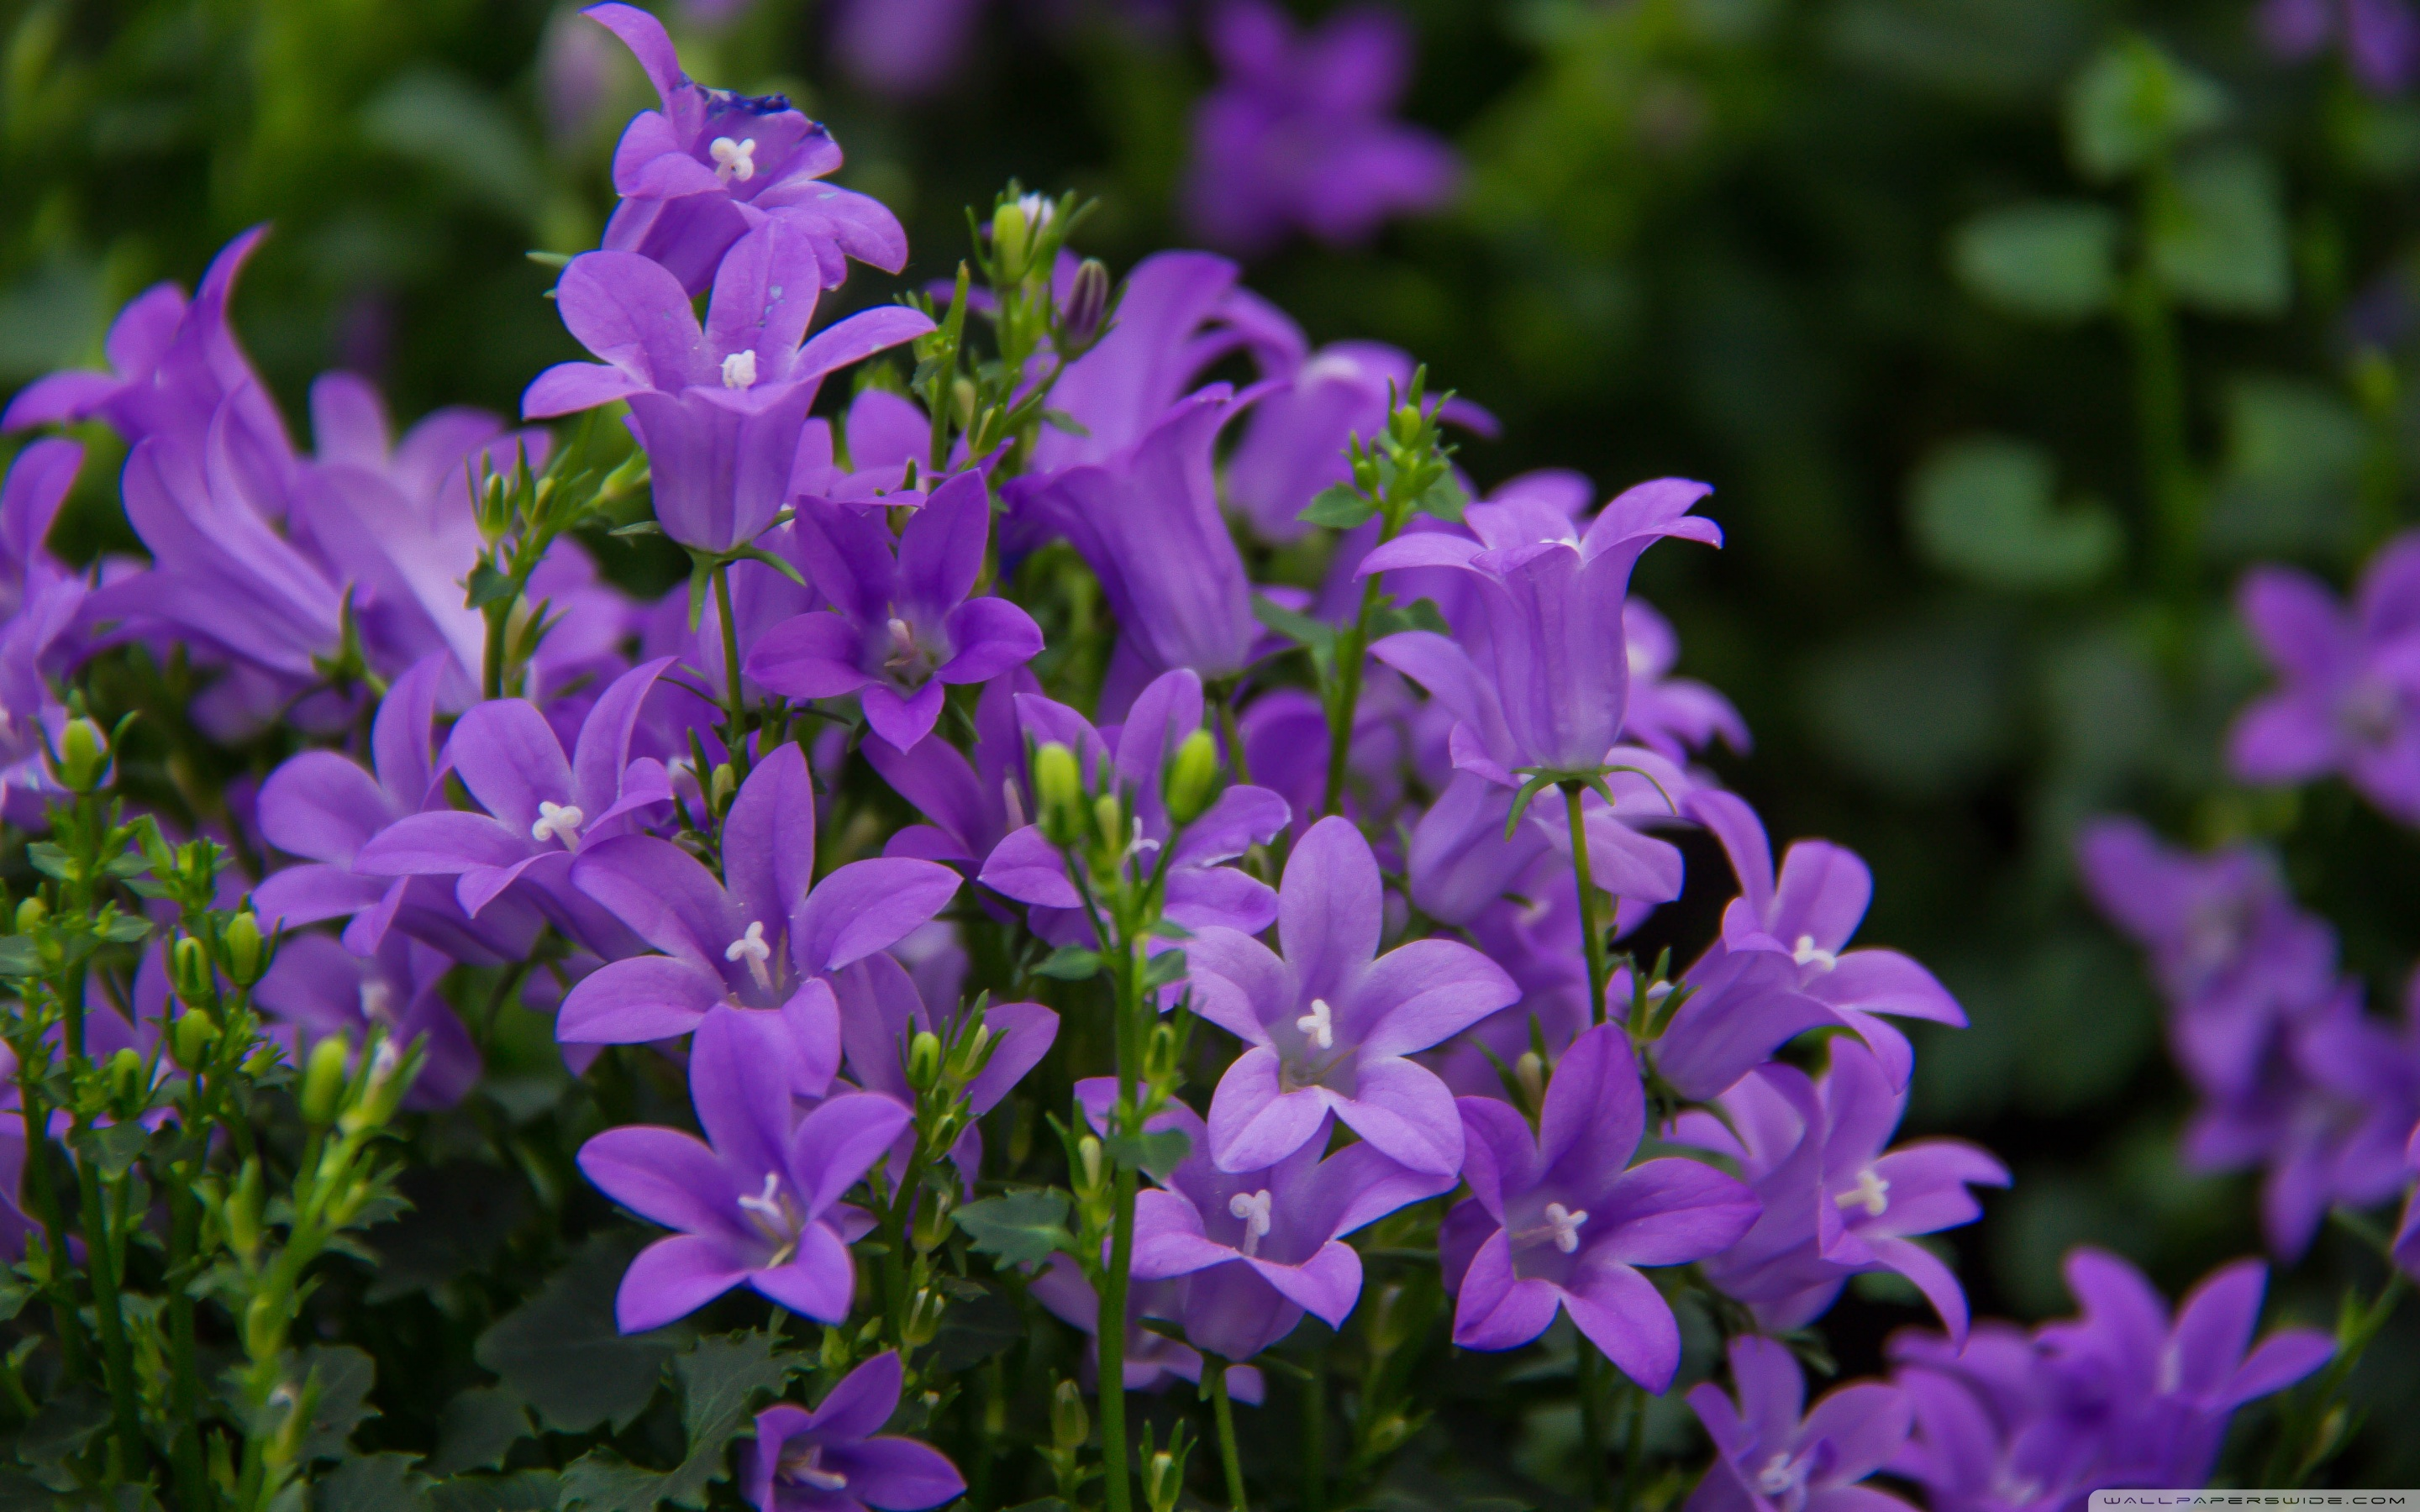 Pretty purple flowers 4k hd desktop wallpaper for 4k ultra hd tv wide 1610 mightylinksfo